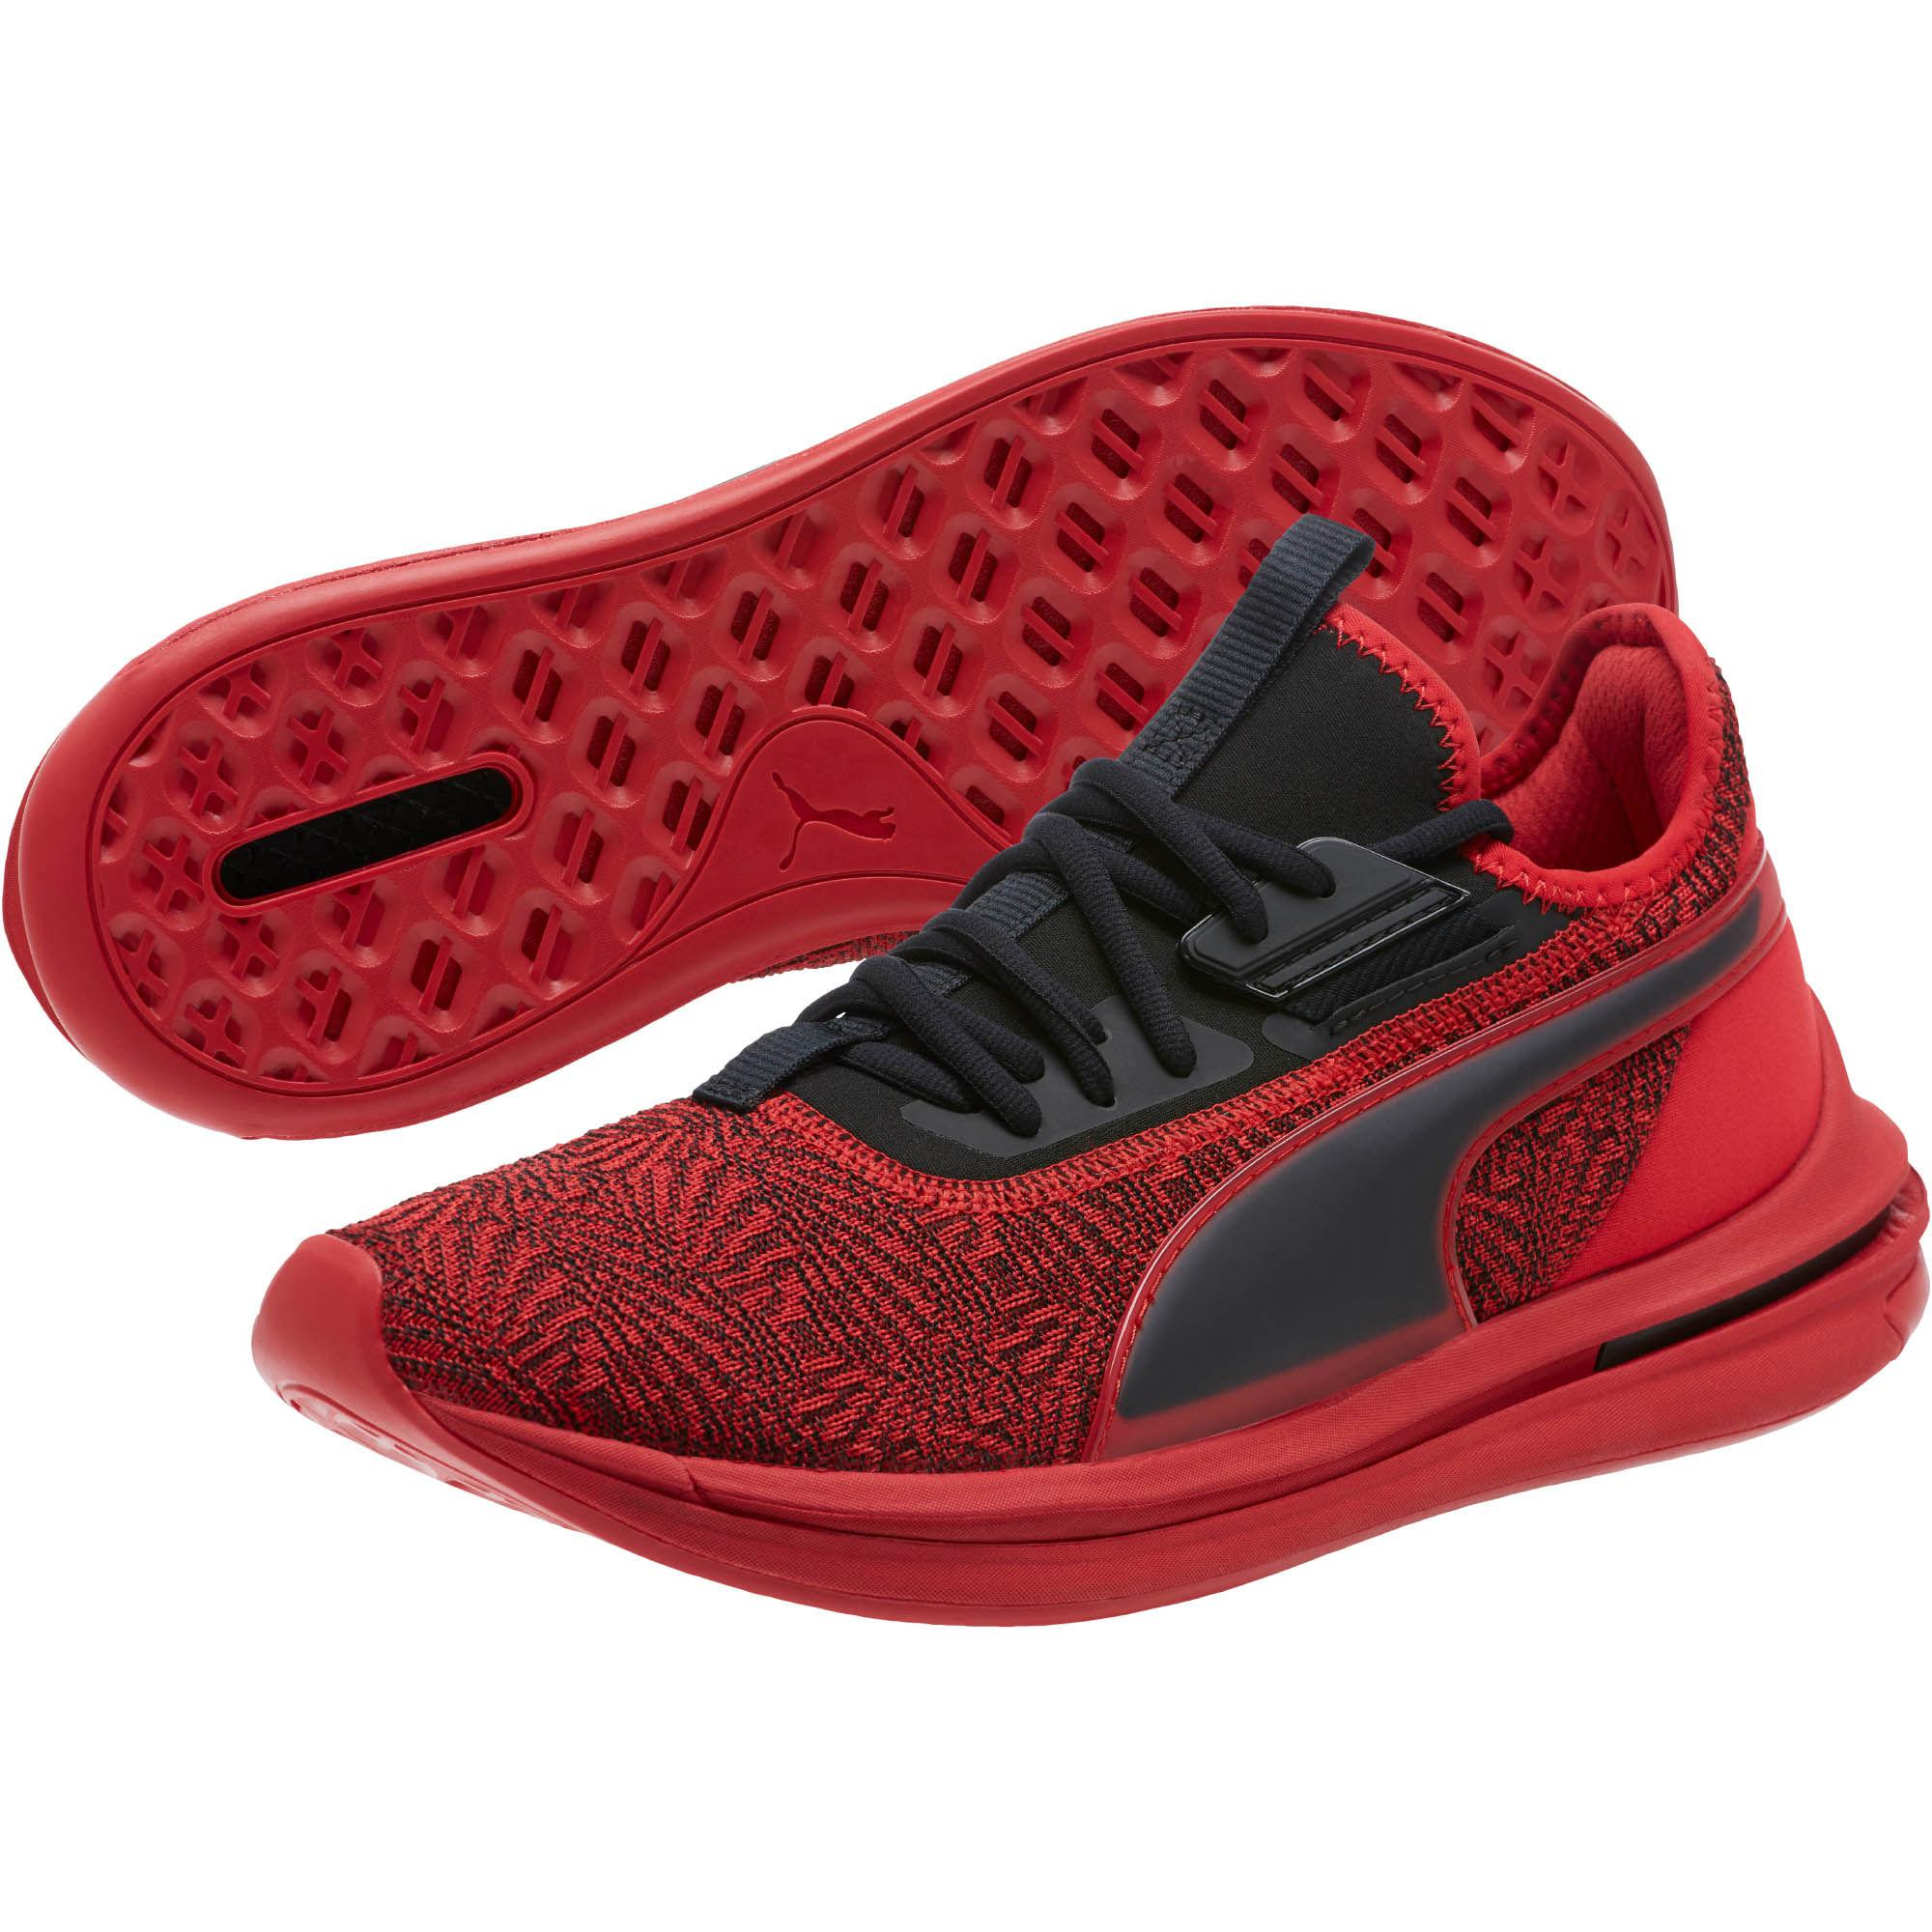 19977802ebfb PUMA - Red Ignite Limitless Sr-71 Running Shoes for Men - Lyst. View  fullscreen